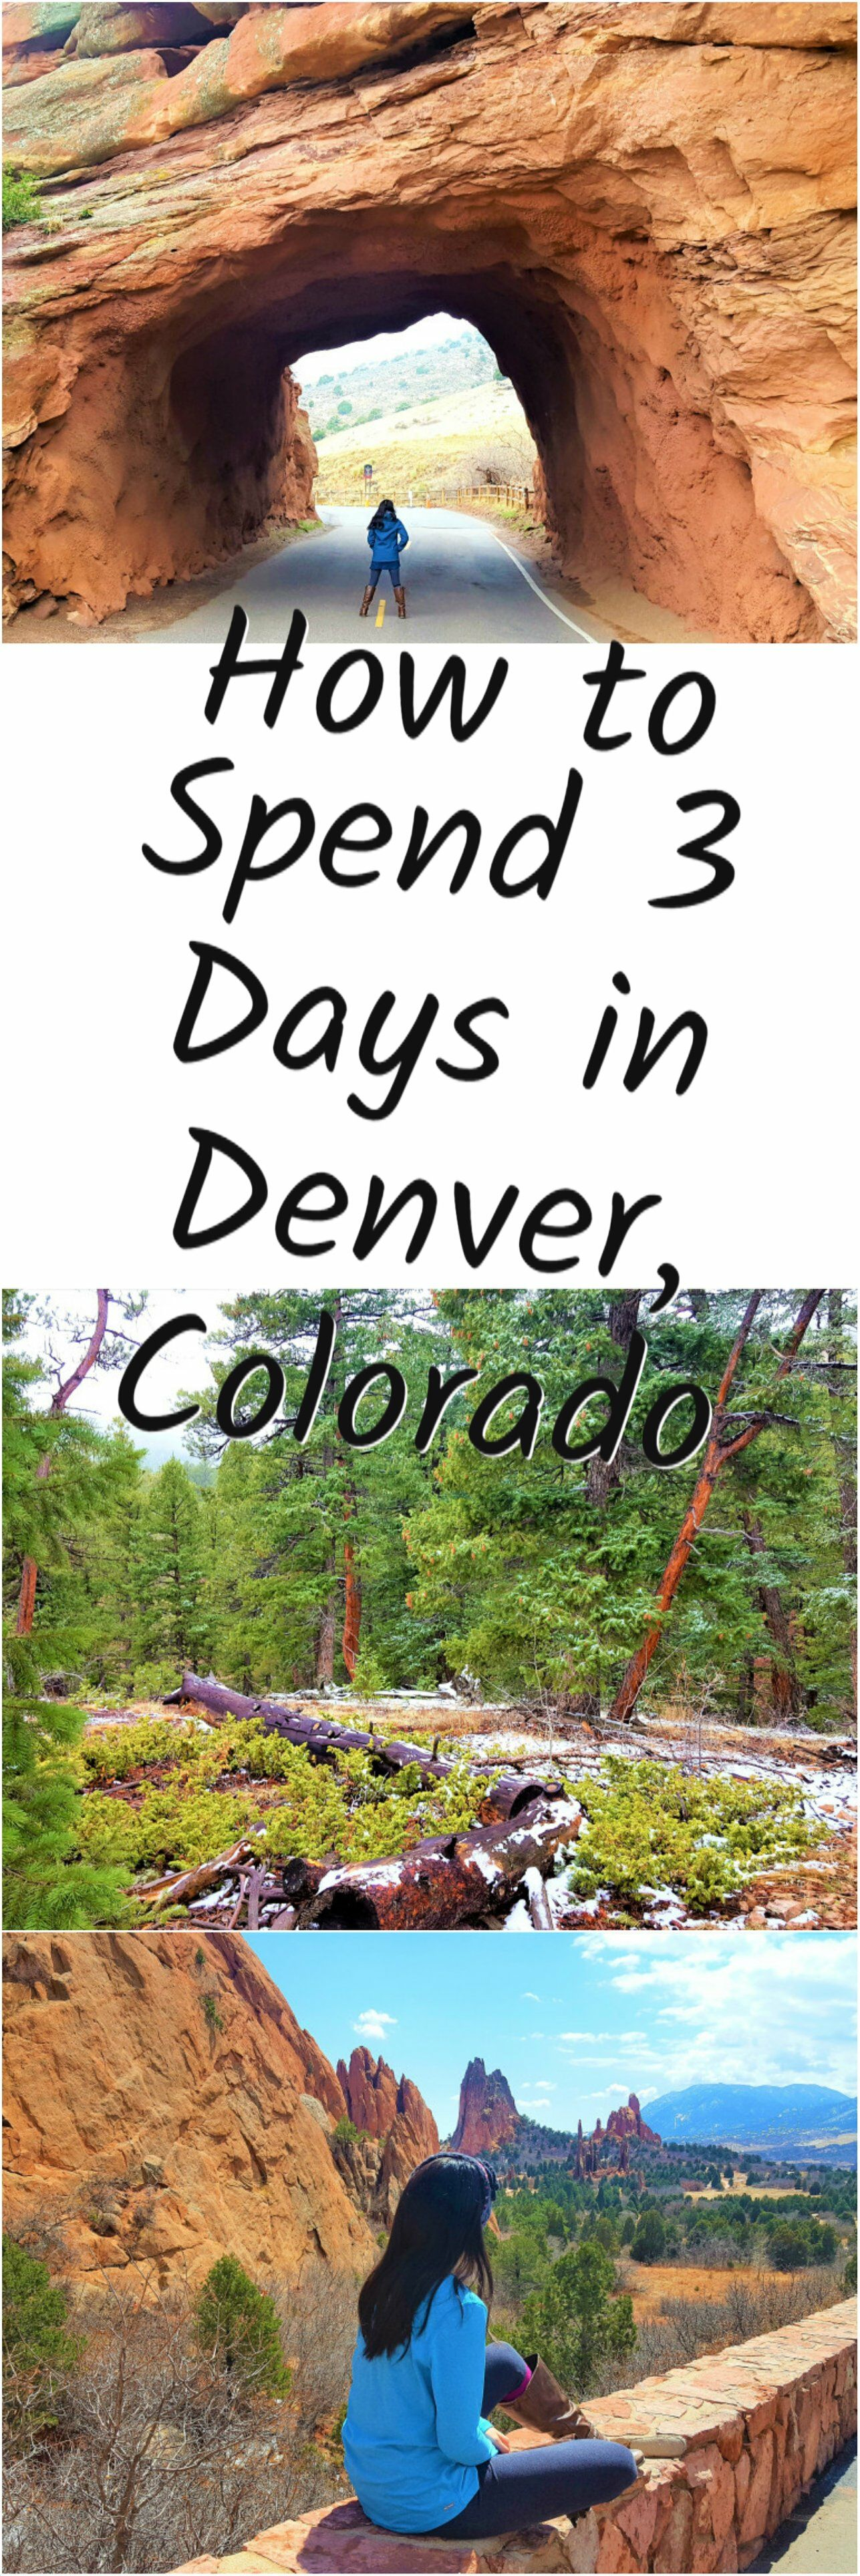 How to Spend 3 Days in Denver, Colorado – Quietude (With ...